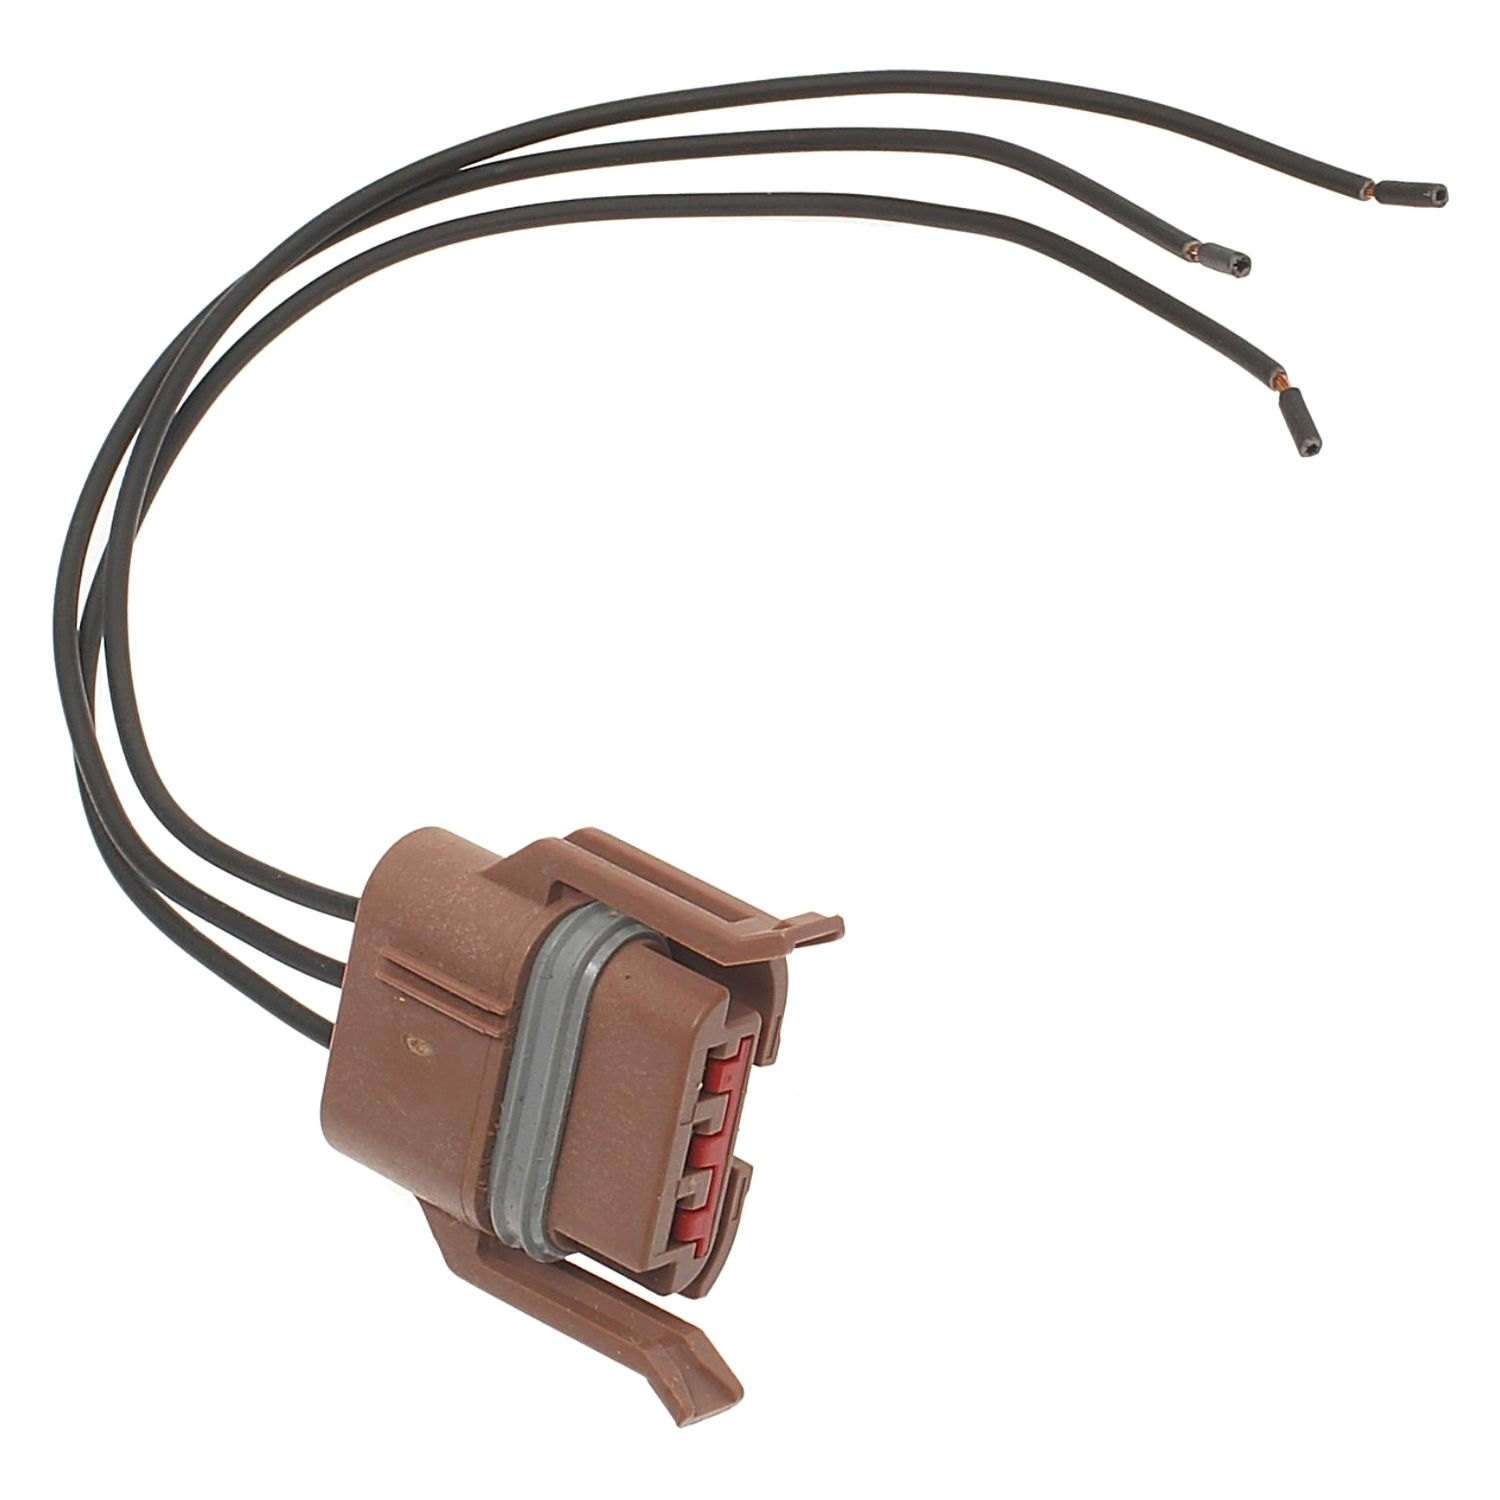 Acdelco Ford Escape 2003 Professional Multi Purpose Connector Kit Wiring Harness Connectors